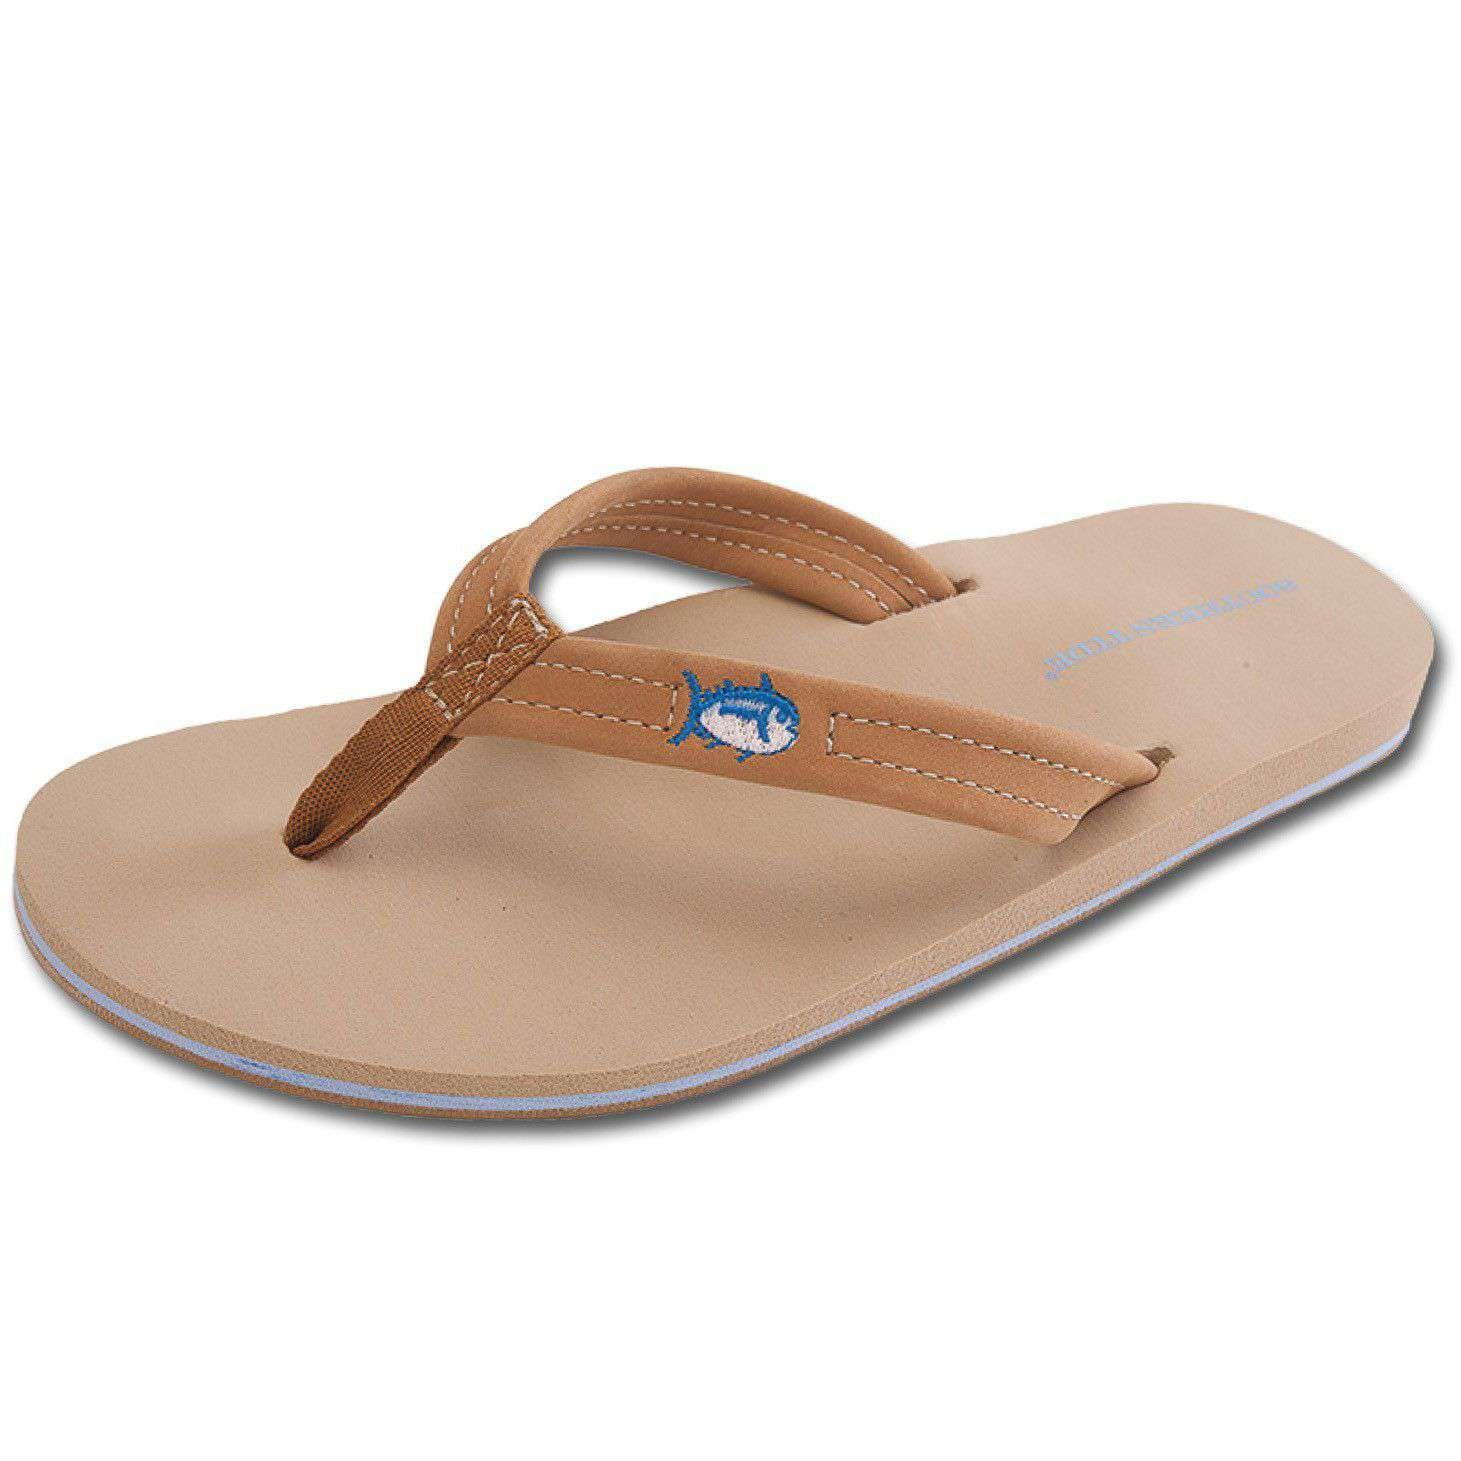 Women's Sandals - Women's Weekend Flipjacks In Seashore By Southern Tide